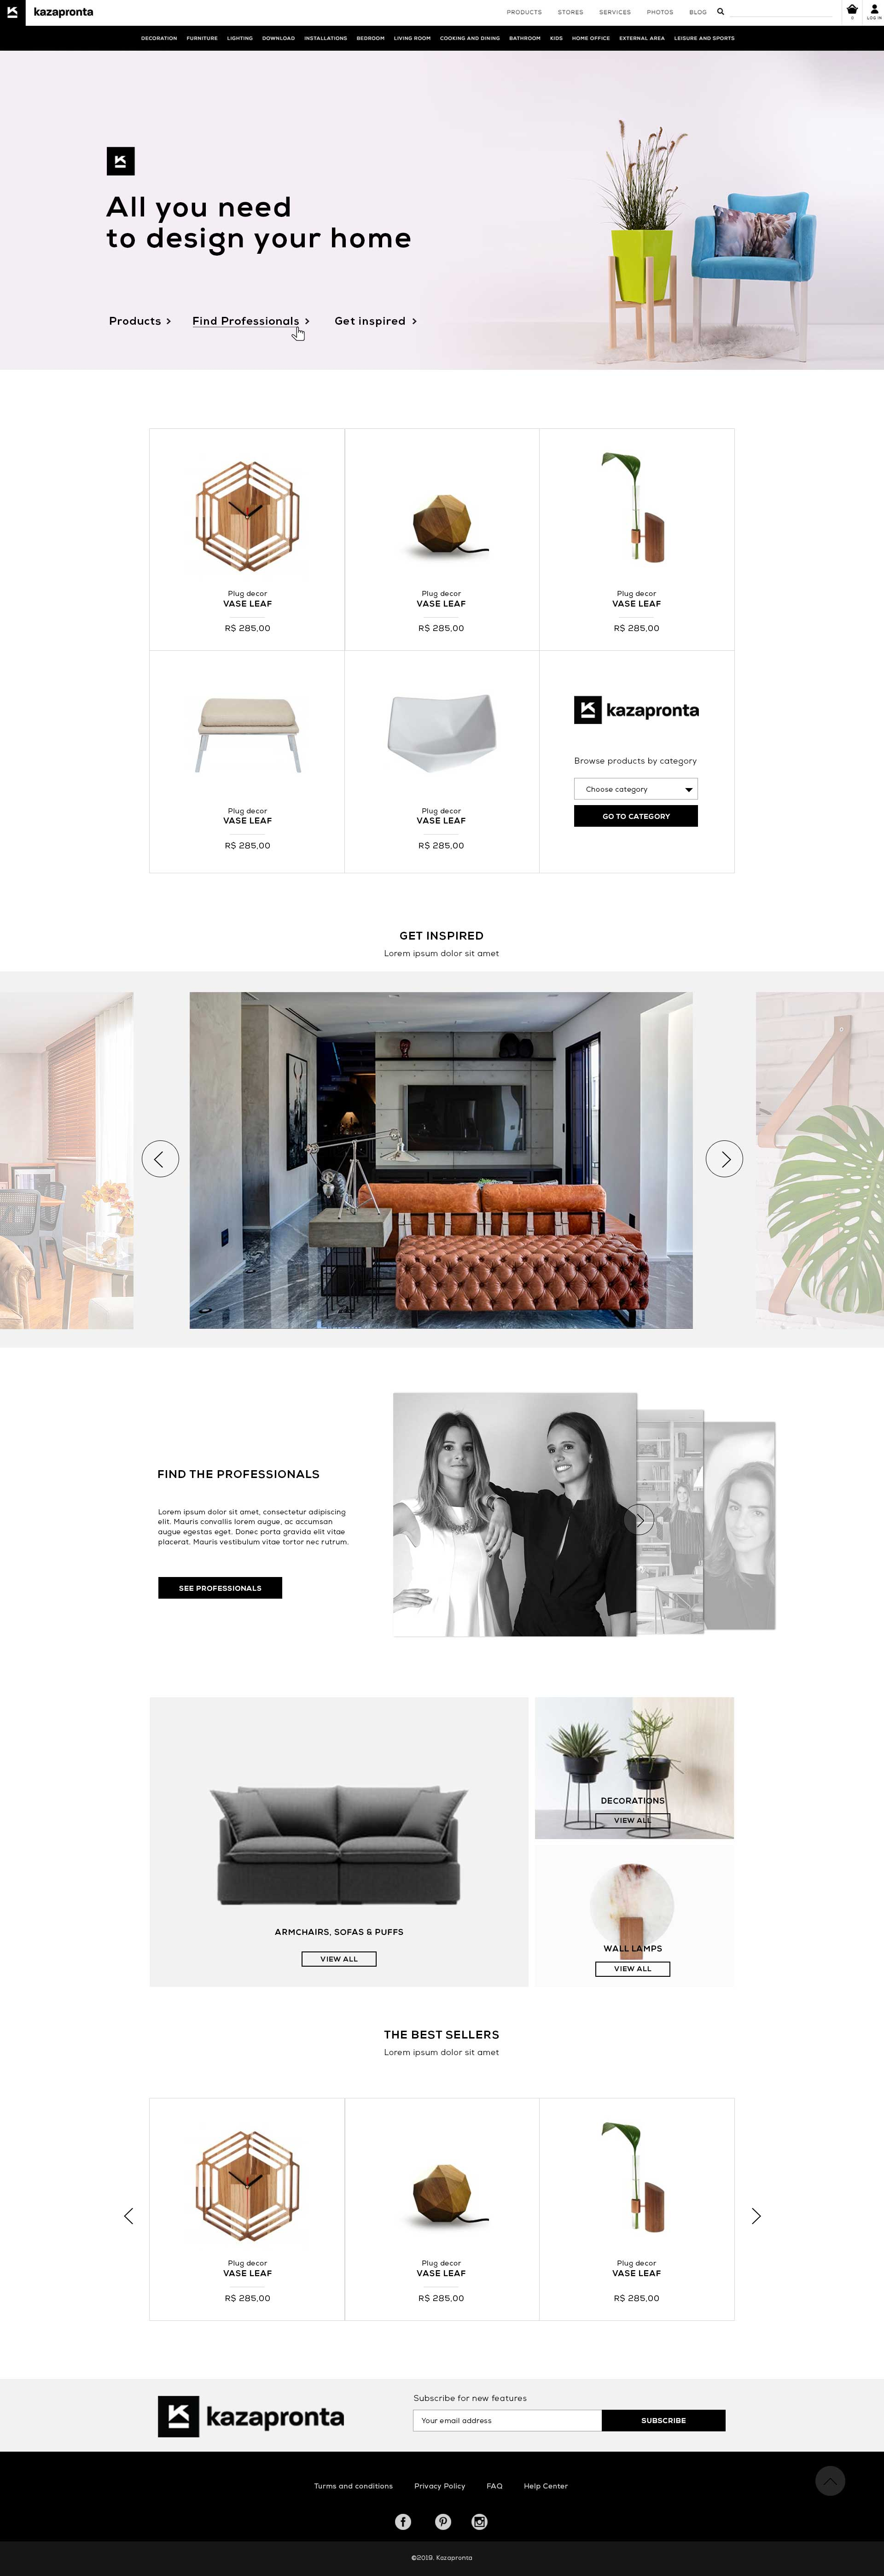 Web shop home decor homepage design - full page view